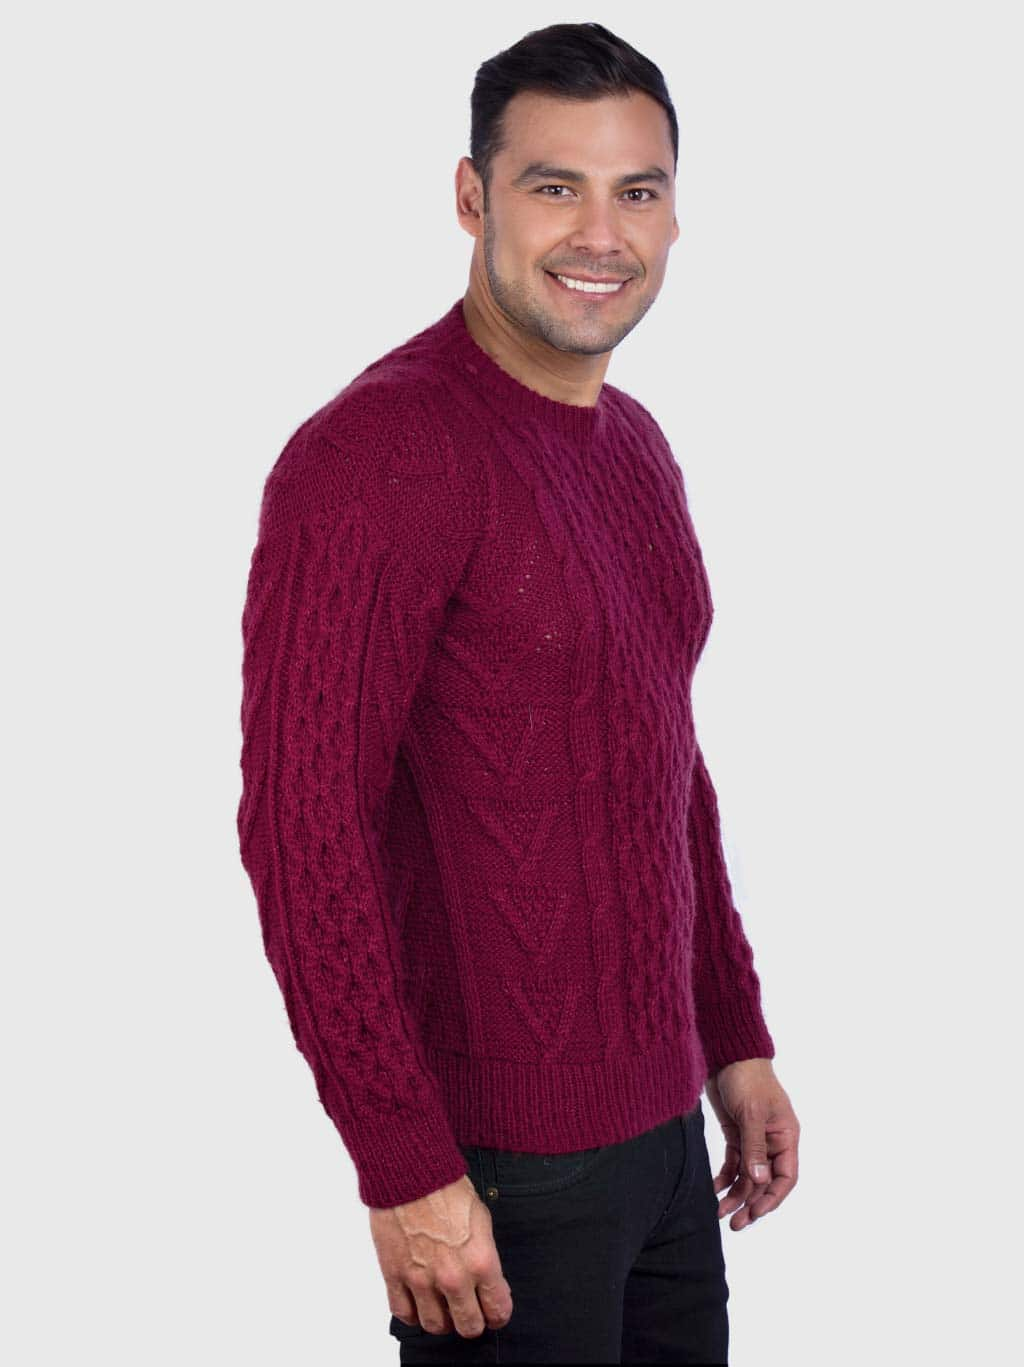 Hand knit Warm Burgundy Aran Alpaca Sweater for Men Inti Alpaca Alpaca Clothing